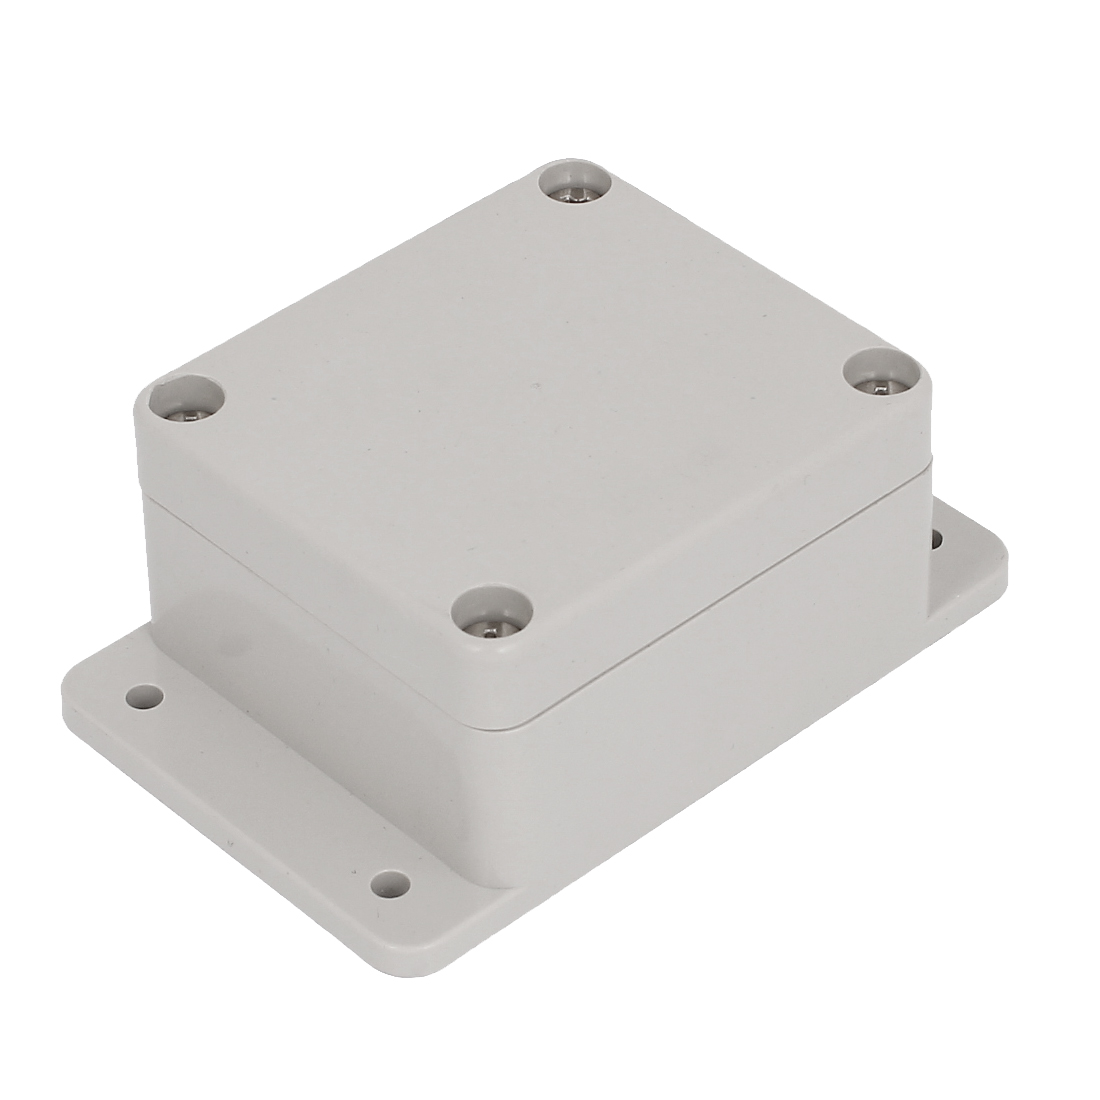 90mm x 60mm x 35mm Dustproof IP65 Sealed Joint DIY Project Electrical Junction Box